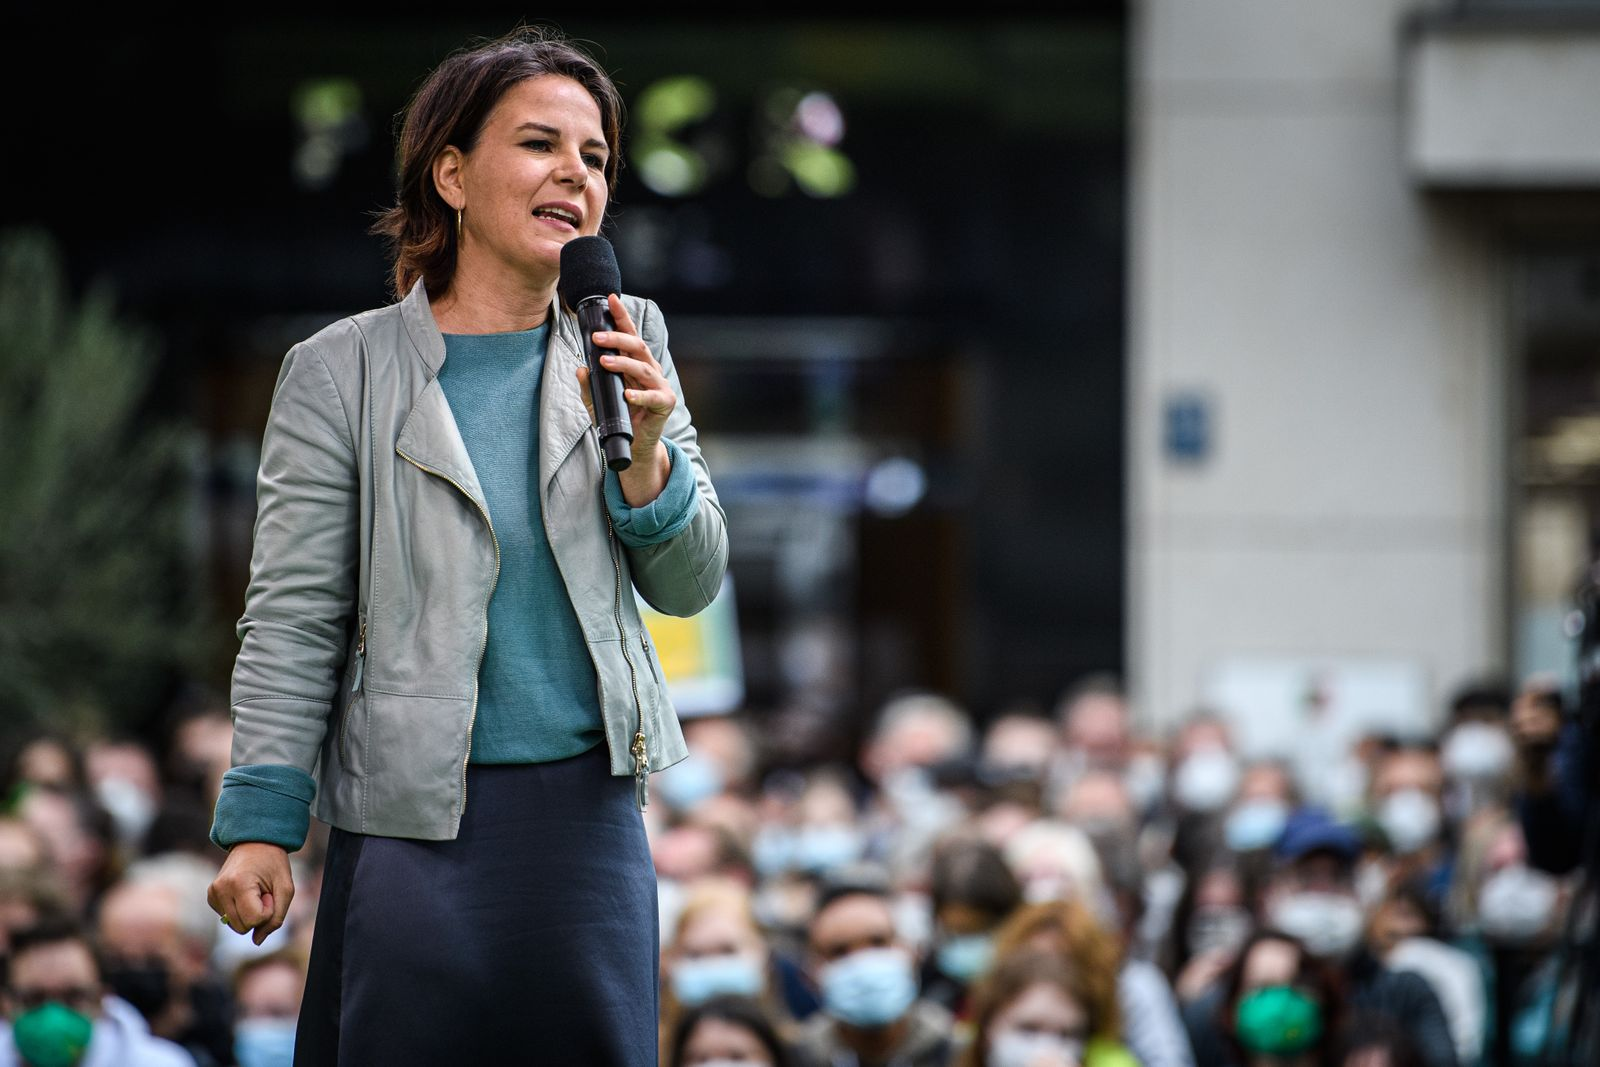 Greens Party Holds Closing Election Campaign Rally In Dusseldorf